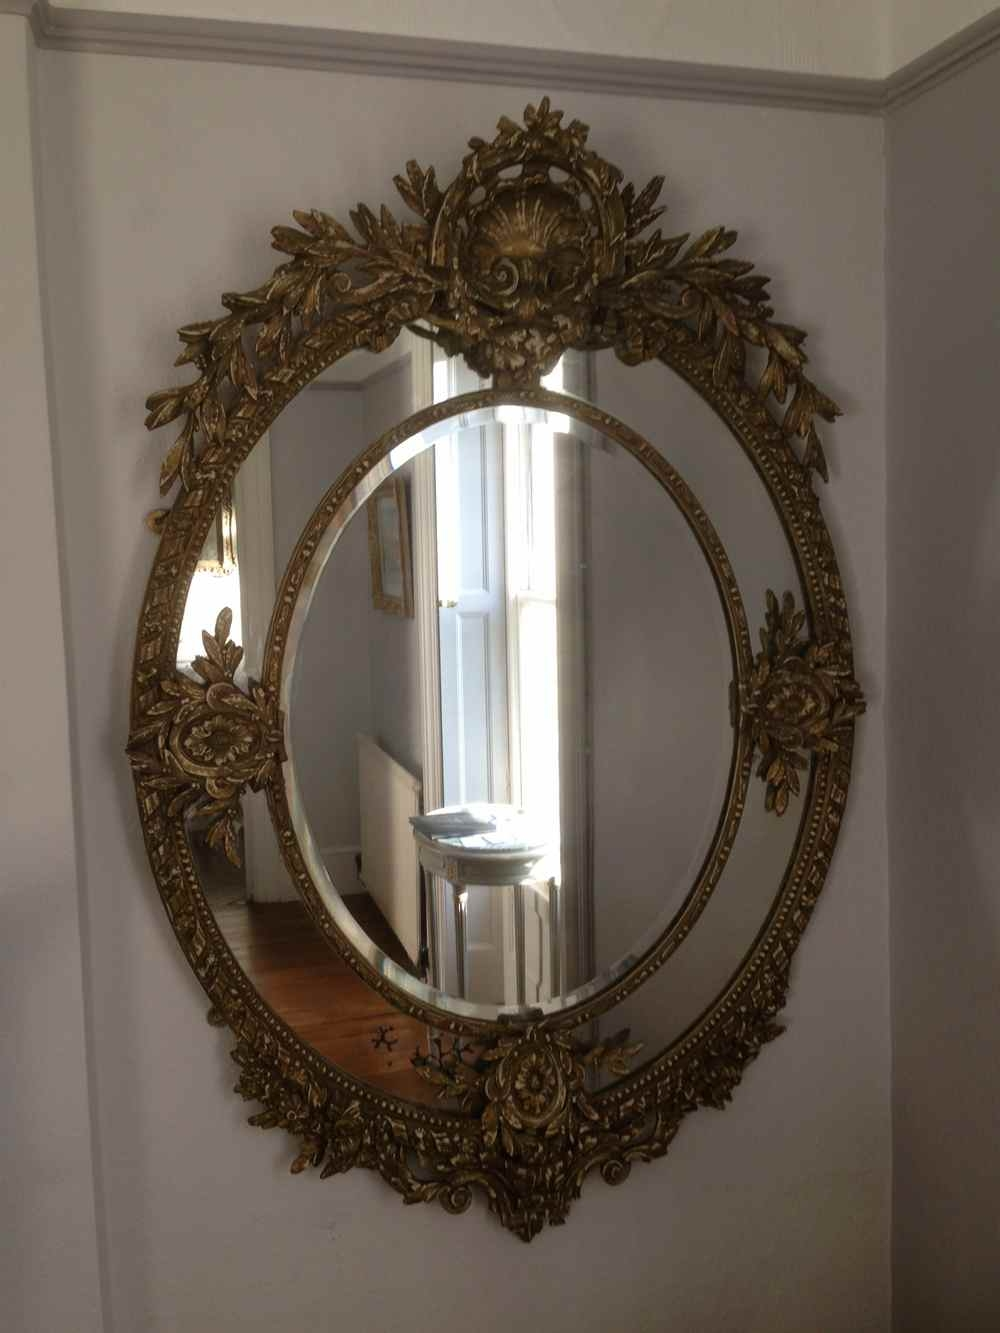 Classic Impression On Antique Wall Mirrors Vwho In Large Antique Wall Mirrors (Image 8 of 15)